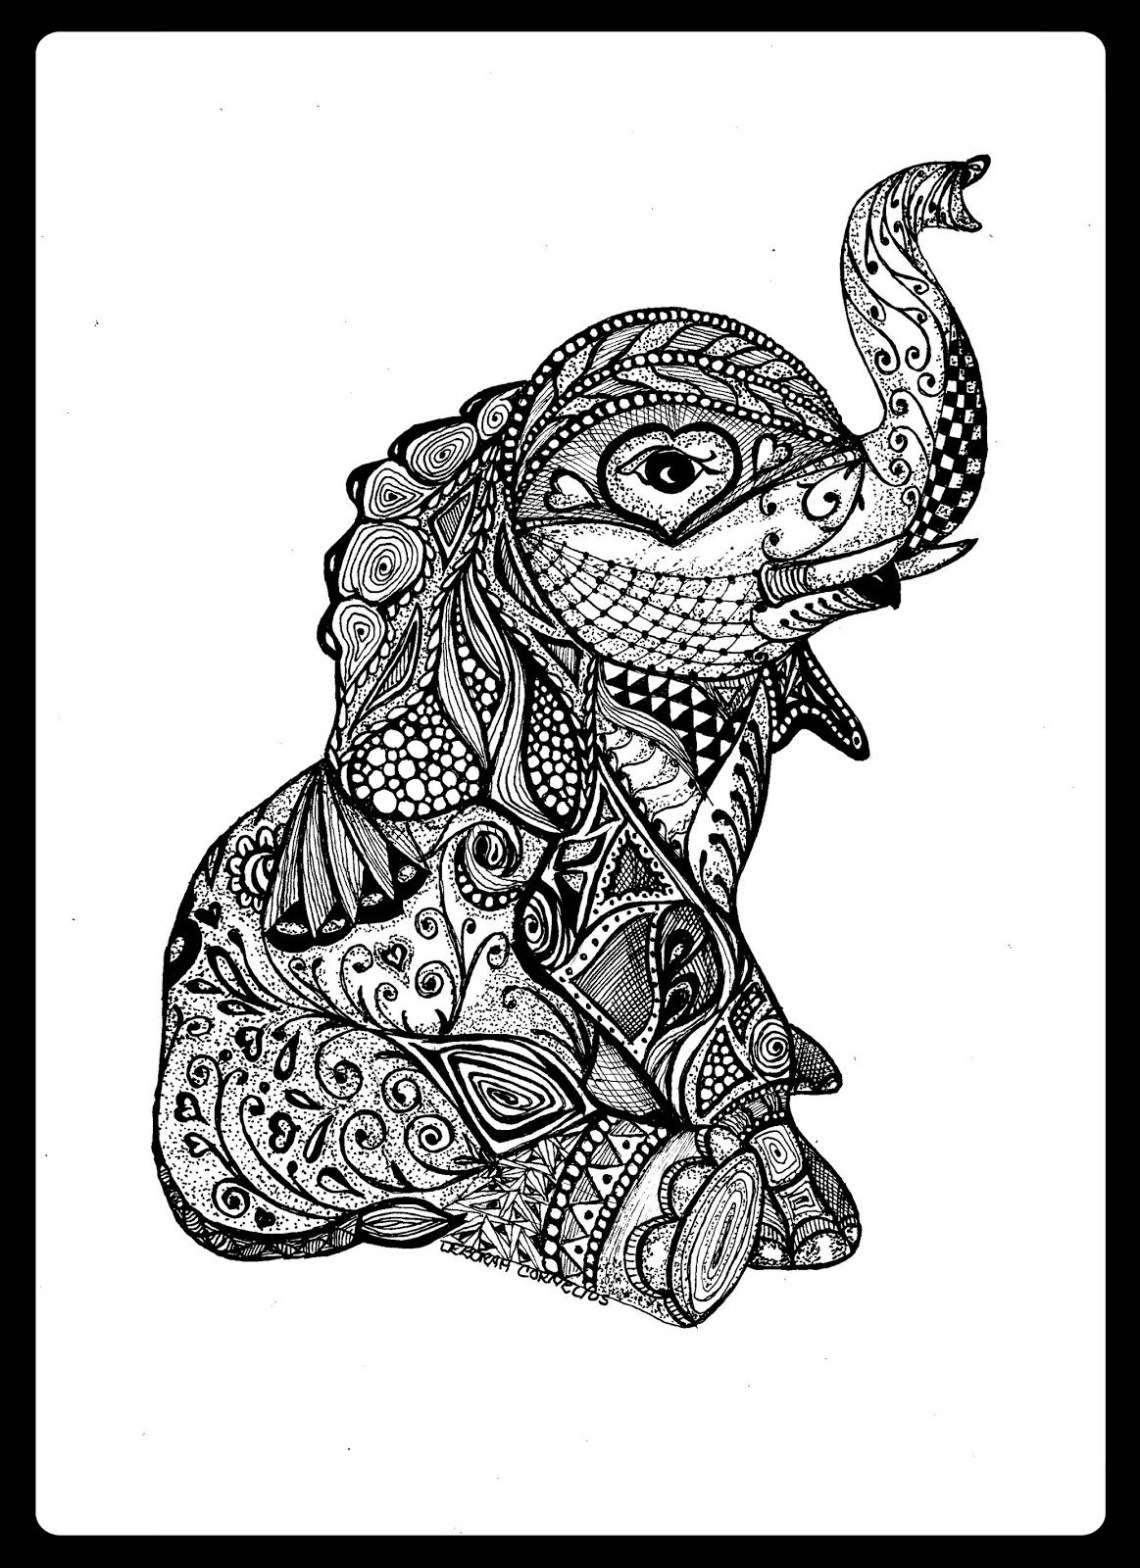 Elephant Mandala Coloring Pages Collection | Free Coloring ... | mandala art coloring pages animals